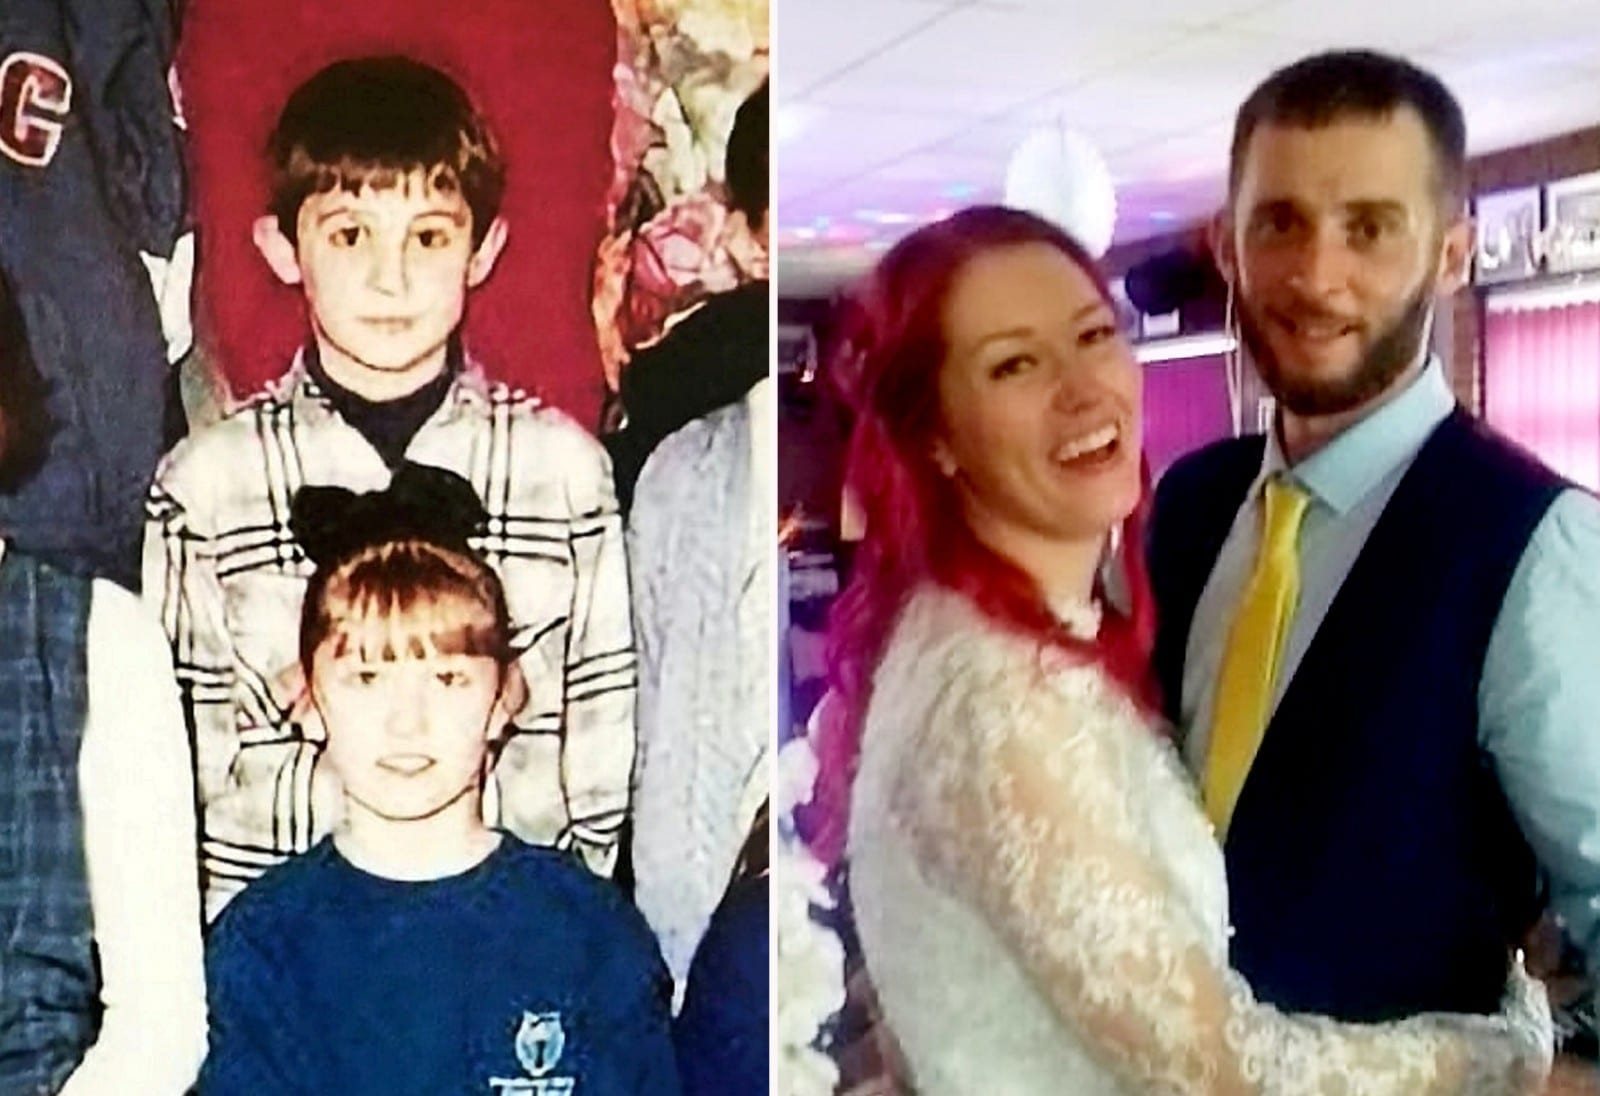 Couple Who Were Classmates Get Married In The School Where They Met As Children